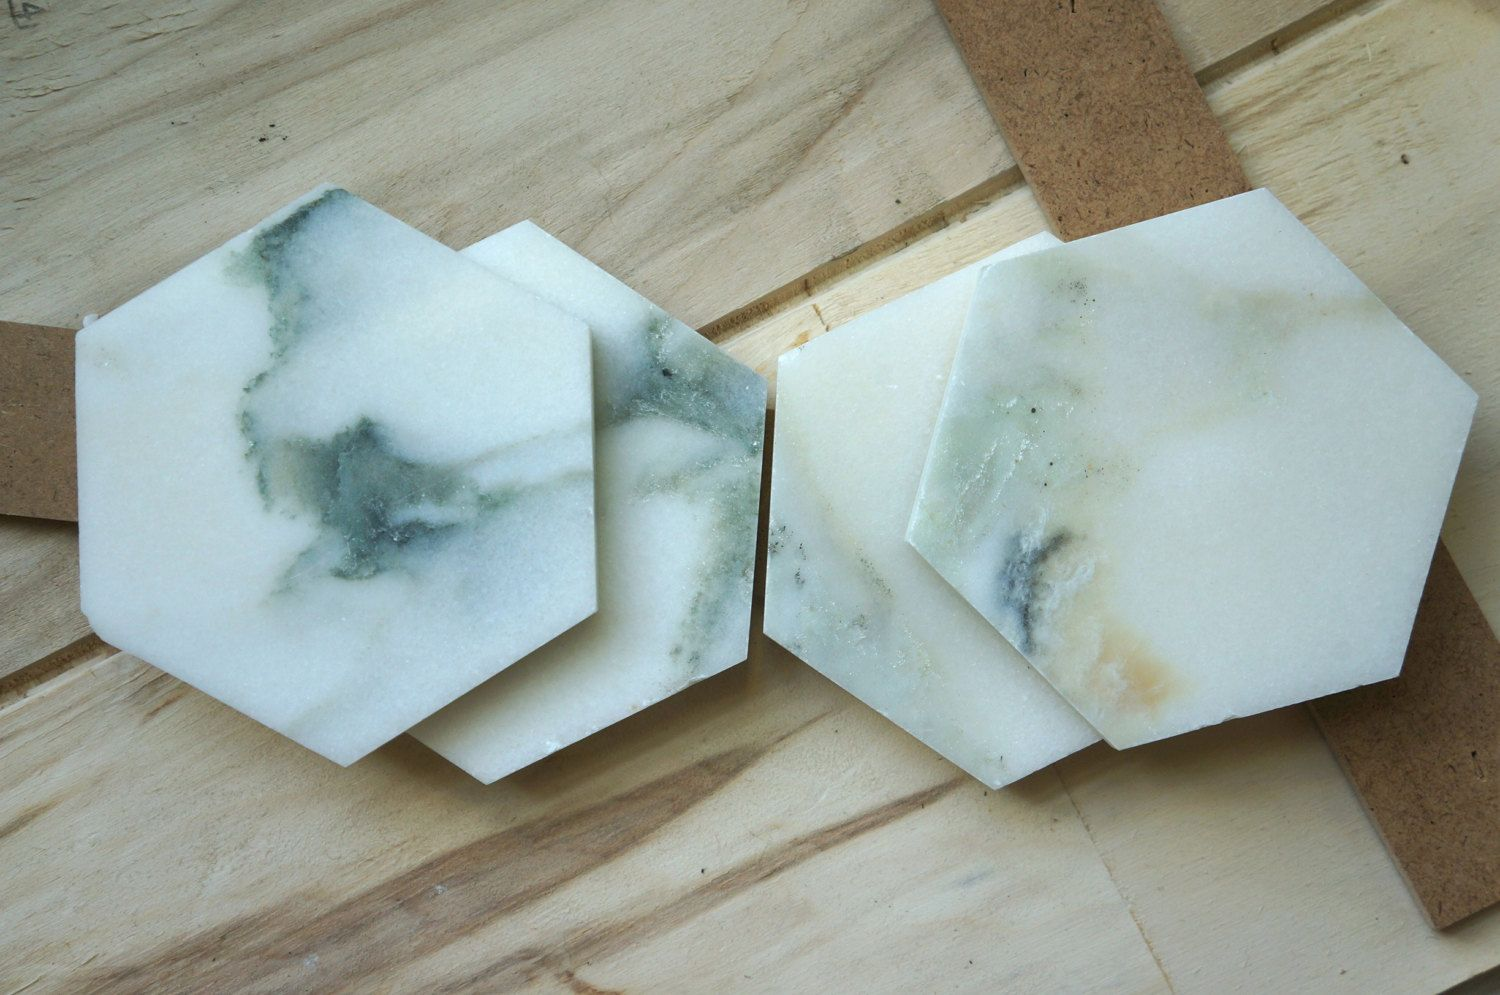 Green Marble Hexagon Coasters. Calacatta Gold Marble. Set of 4. Natural Stone Coasters by MeAConcrete on Etsy